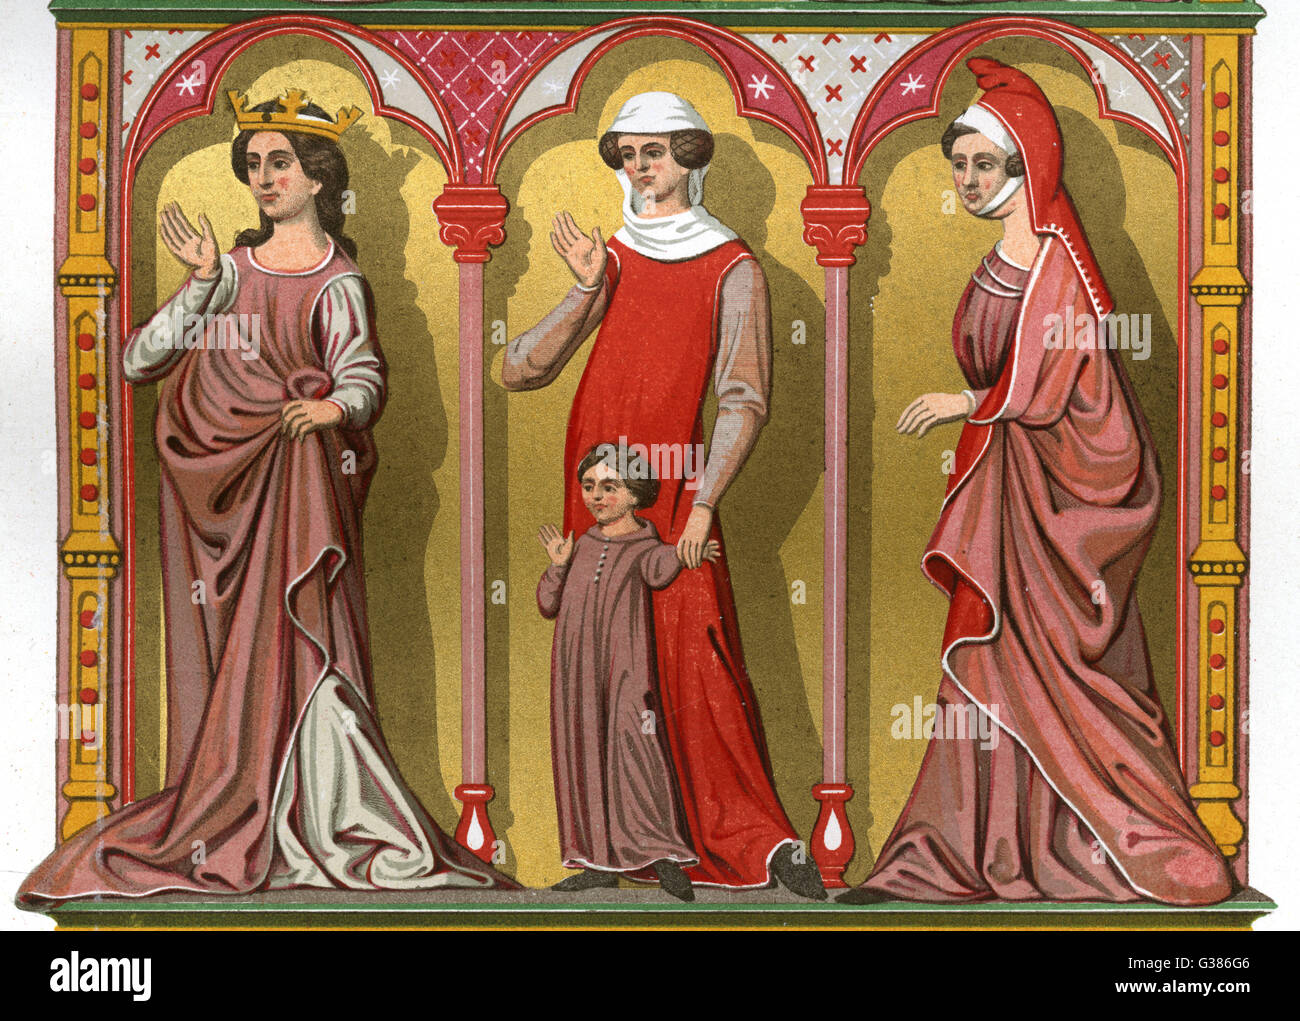 A Queen, Bourgeoise (with son)  and noblewoman        Date: 13th Century - Stock Image